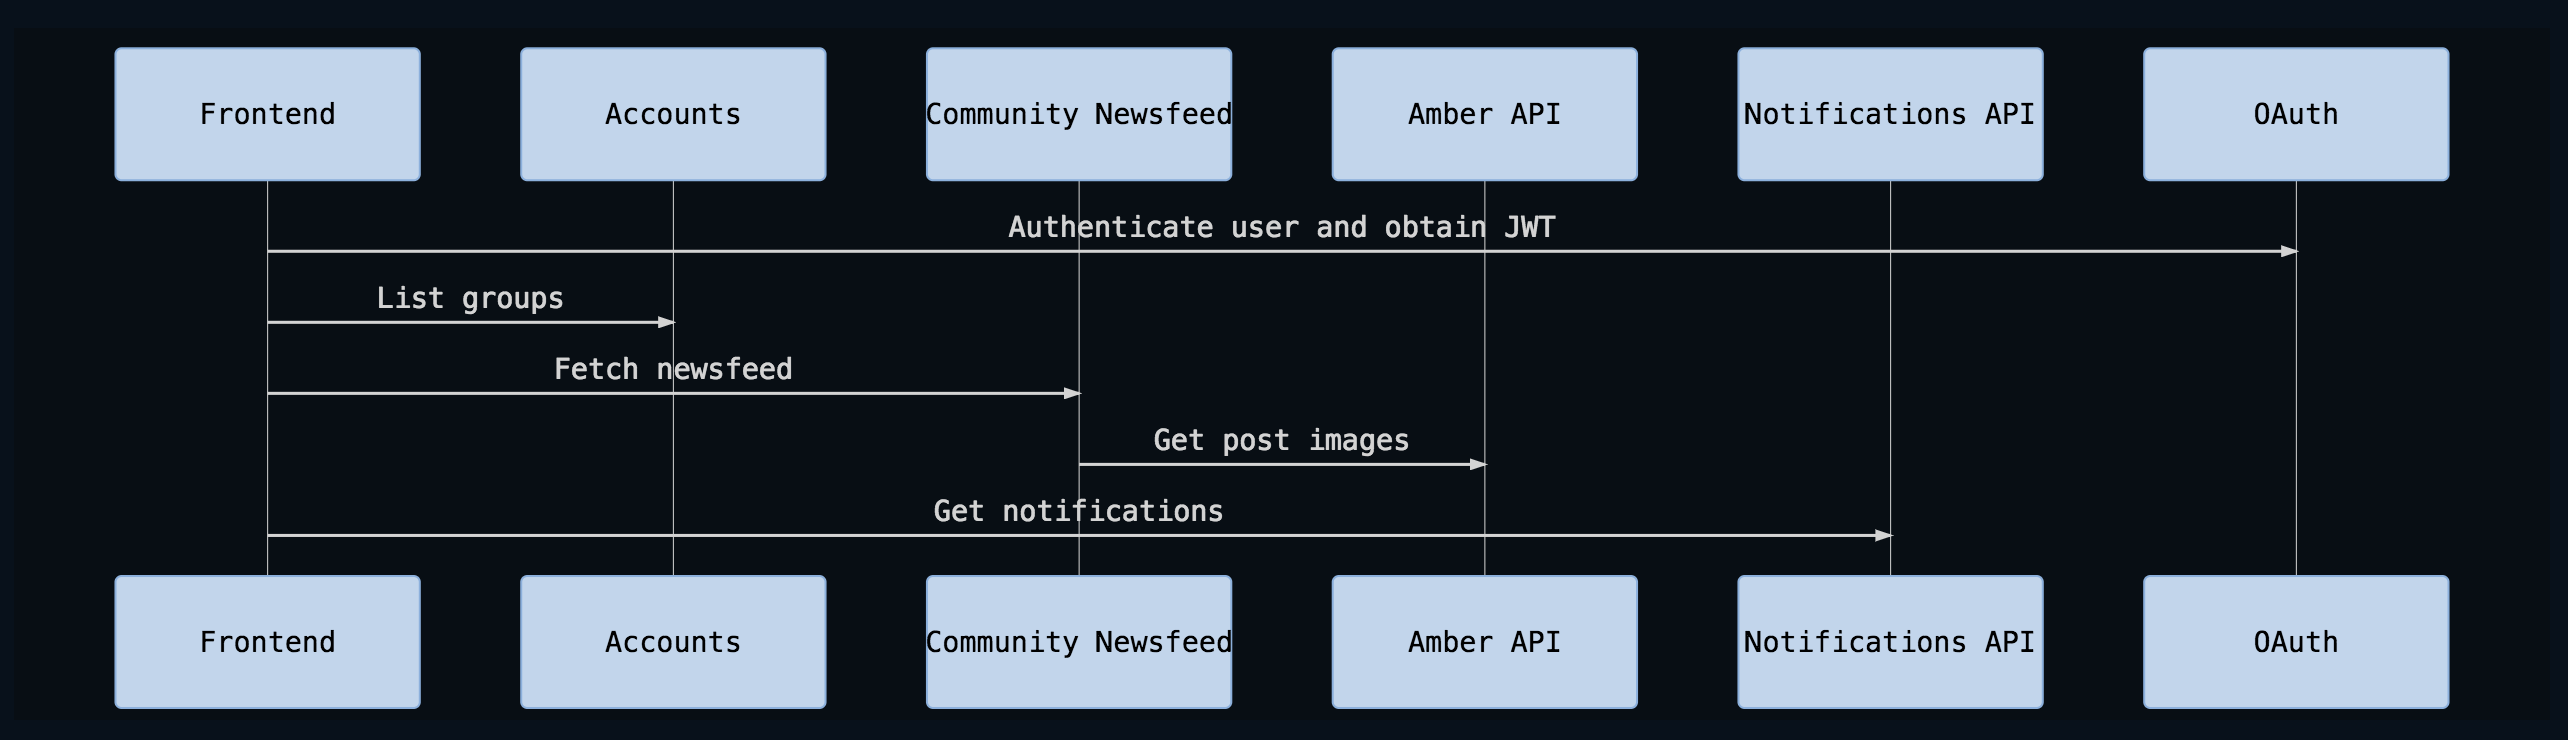 mermaid sequenceDiagram 	participant Frontend 	participant Accounts 	participant Community Newsfeed 	participant Amber API 	participant Notifications API 	participant OAuth 	Frontend->> OAuth: Authenticate user and obtain JWT 	Frontend->> Accounts: List groups 	Frontend->> Community Newsfeed: Fetch newsfeed 	Community Newsfeed->> Amber API: Get post images 	Frontend->> Notifications API: Get notifications